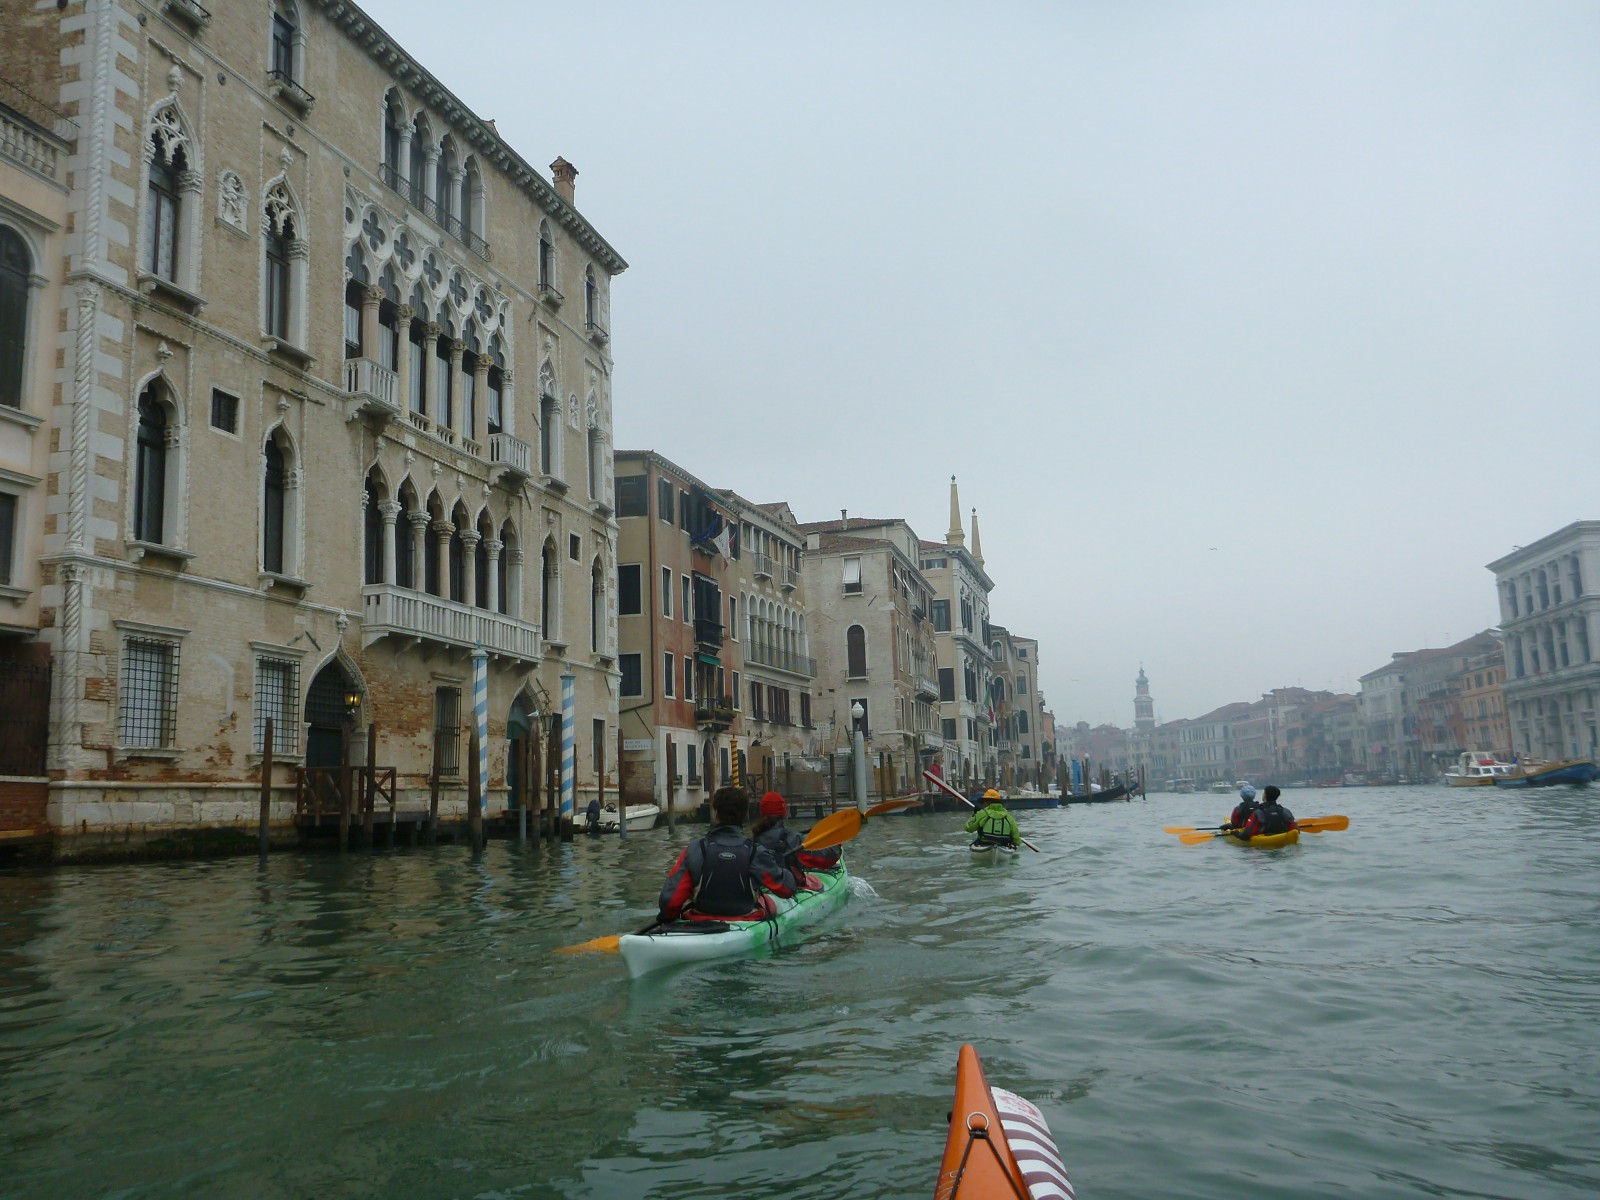 On the Canal Grande